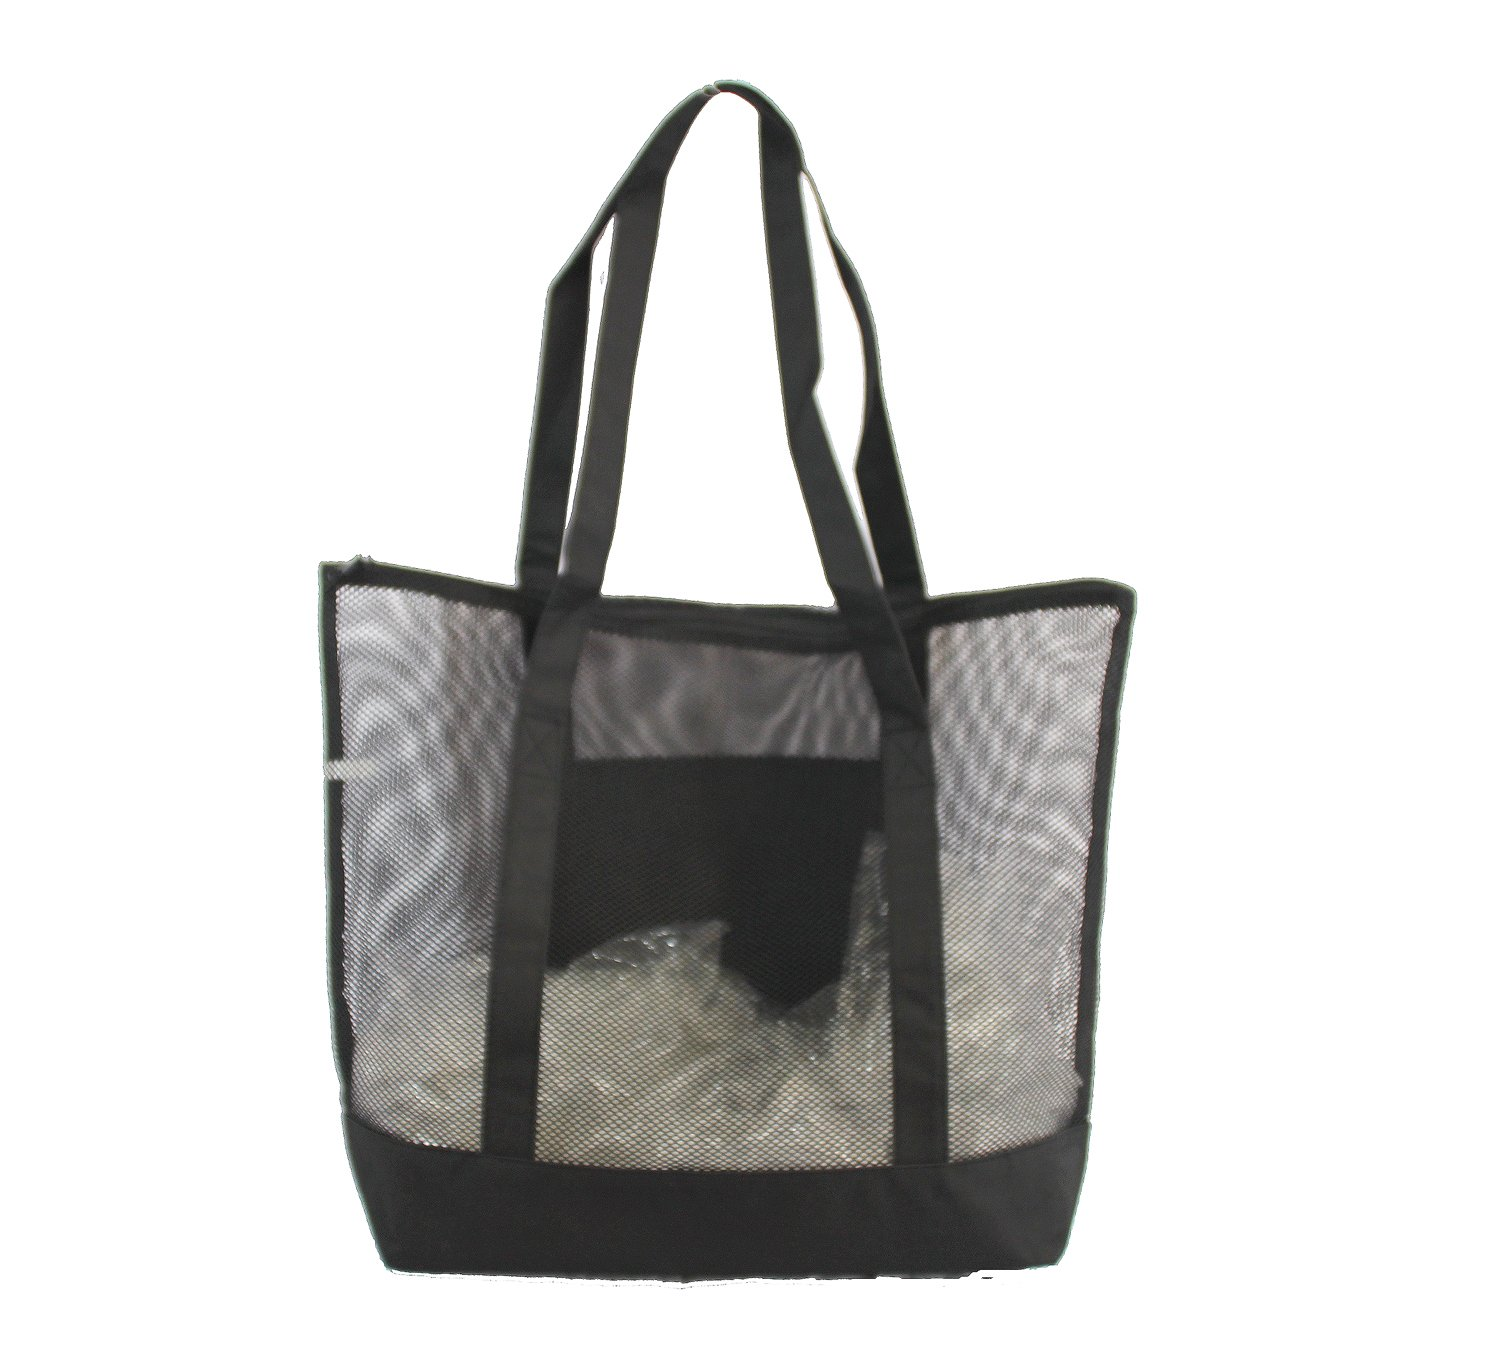 Black 636391901383 Xtitix Deluxe Mesh Beach Tote Bag with Zippered